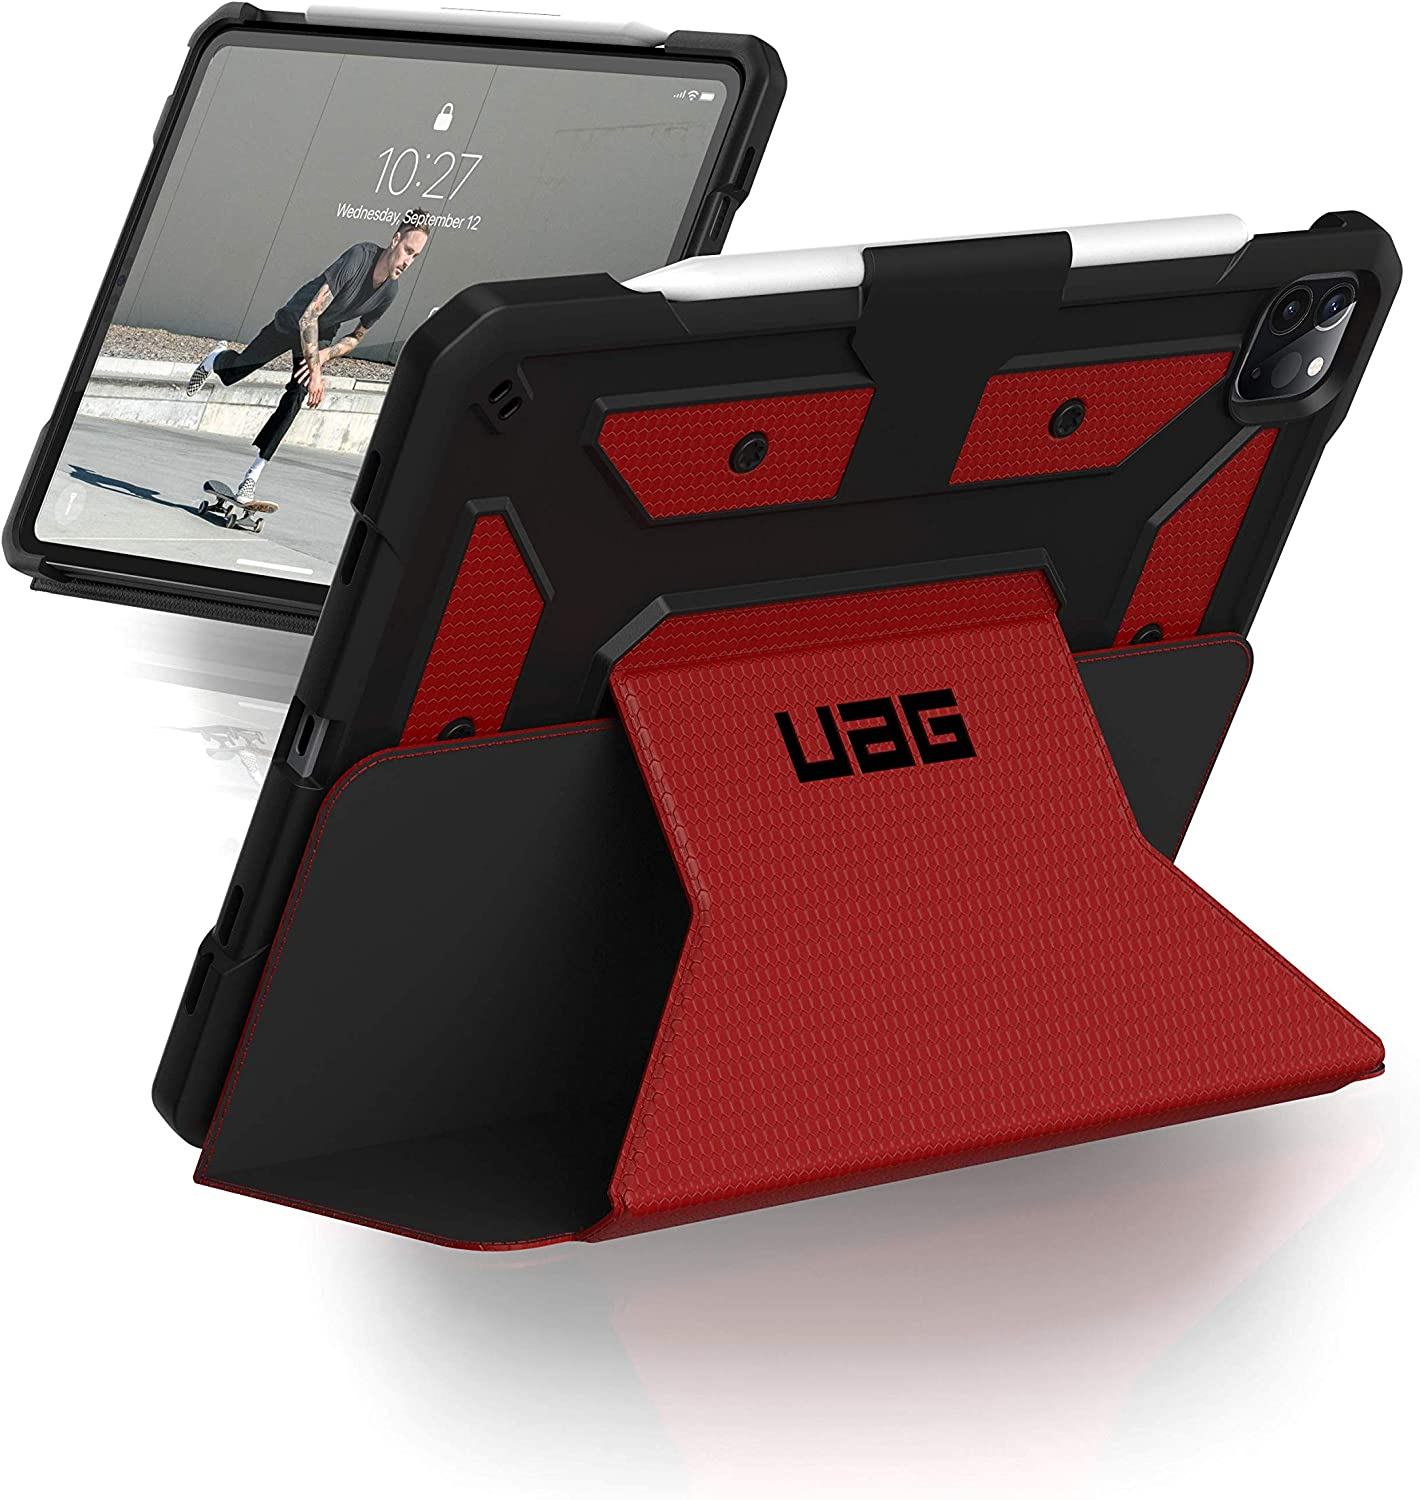 URBAN ARMOR GEAR UAG iPad Pro 11-inch (2nd Gen, 2020) Case Metropolis [Magma] Folio Slim Heavy-Duty Tough Multi-Viewing Angles Stand Military Drop Tested Rugged Protective Cover